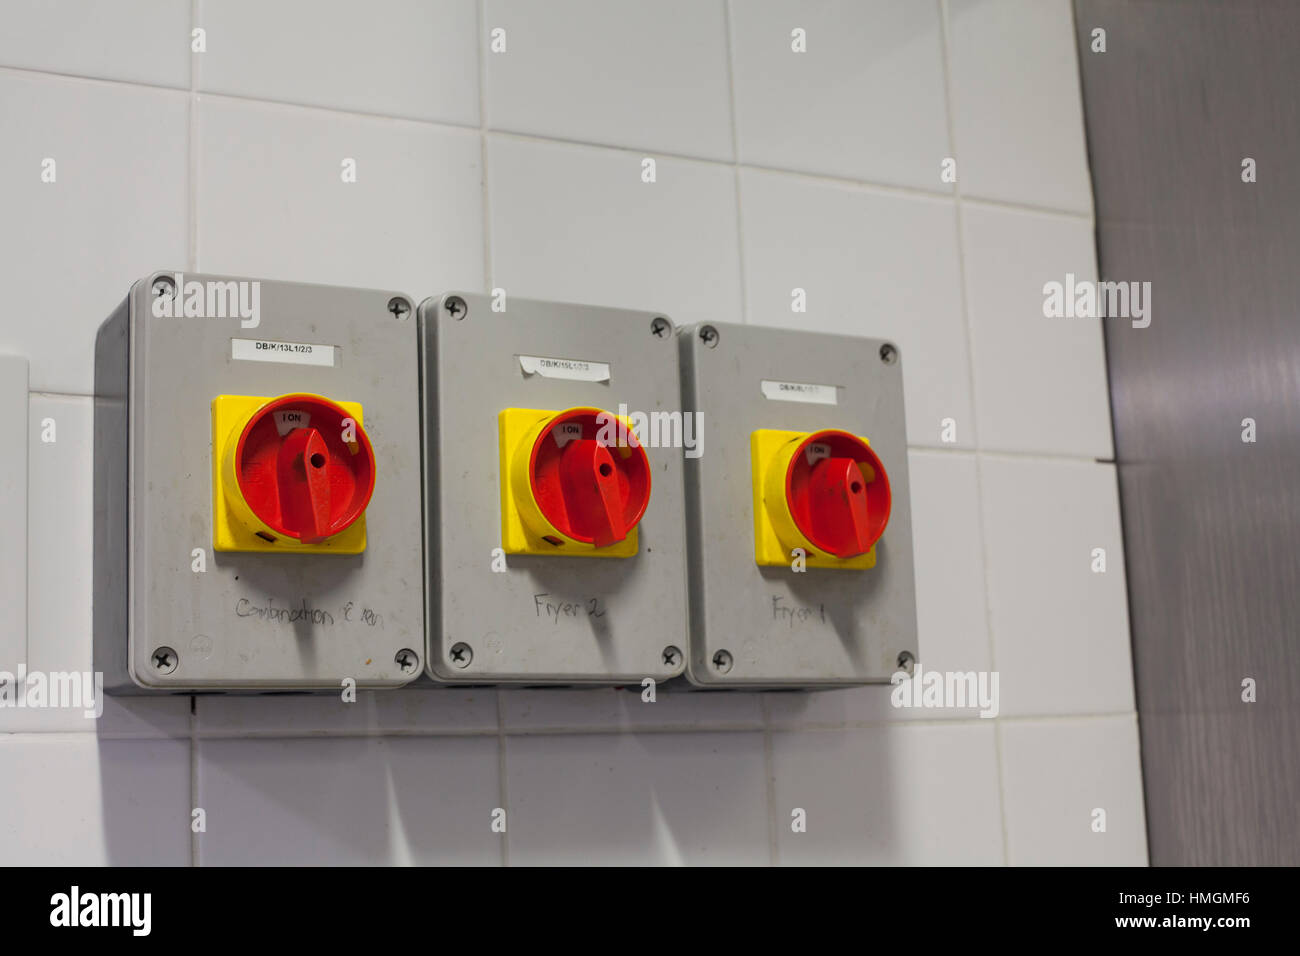 Control Switches Stock Photos & Control Switches Stock Images - Alamy